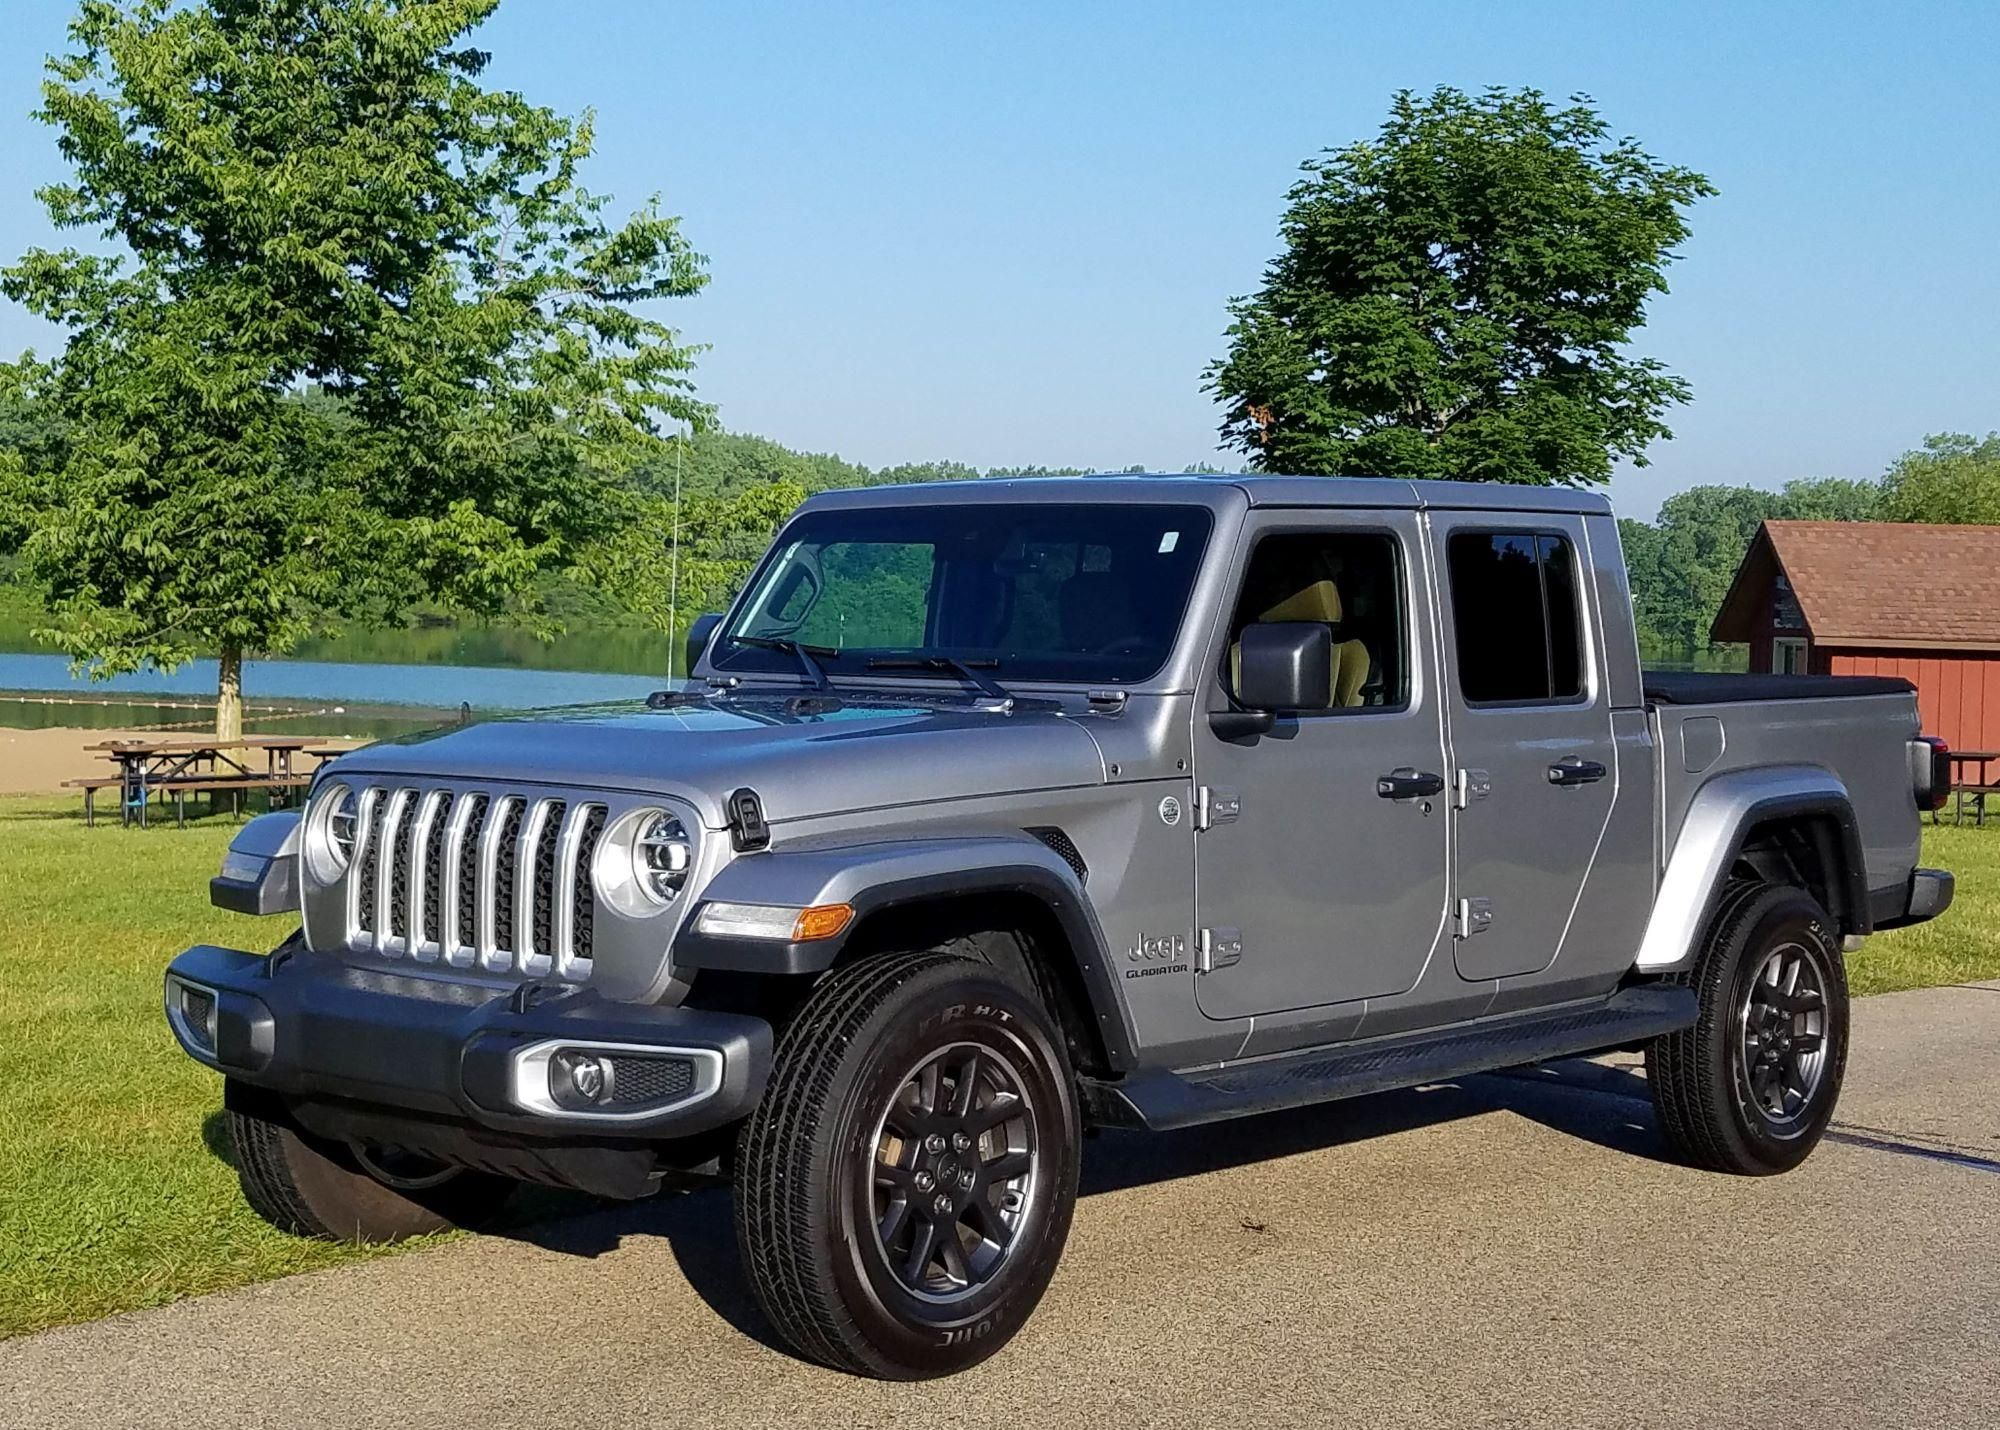 2020 Jeep Gladiator Overland 4x4 Review Wuwm In 2020 Jeep Gladiator Jeep Gladiator For Sale Jeep